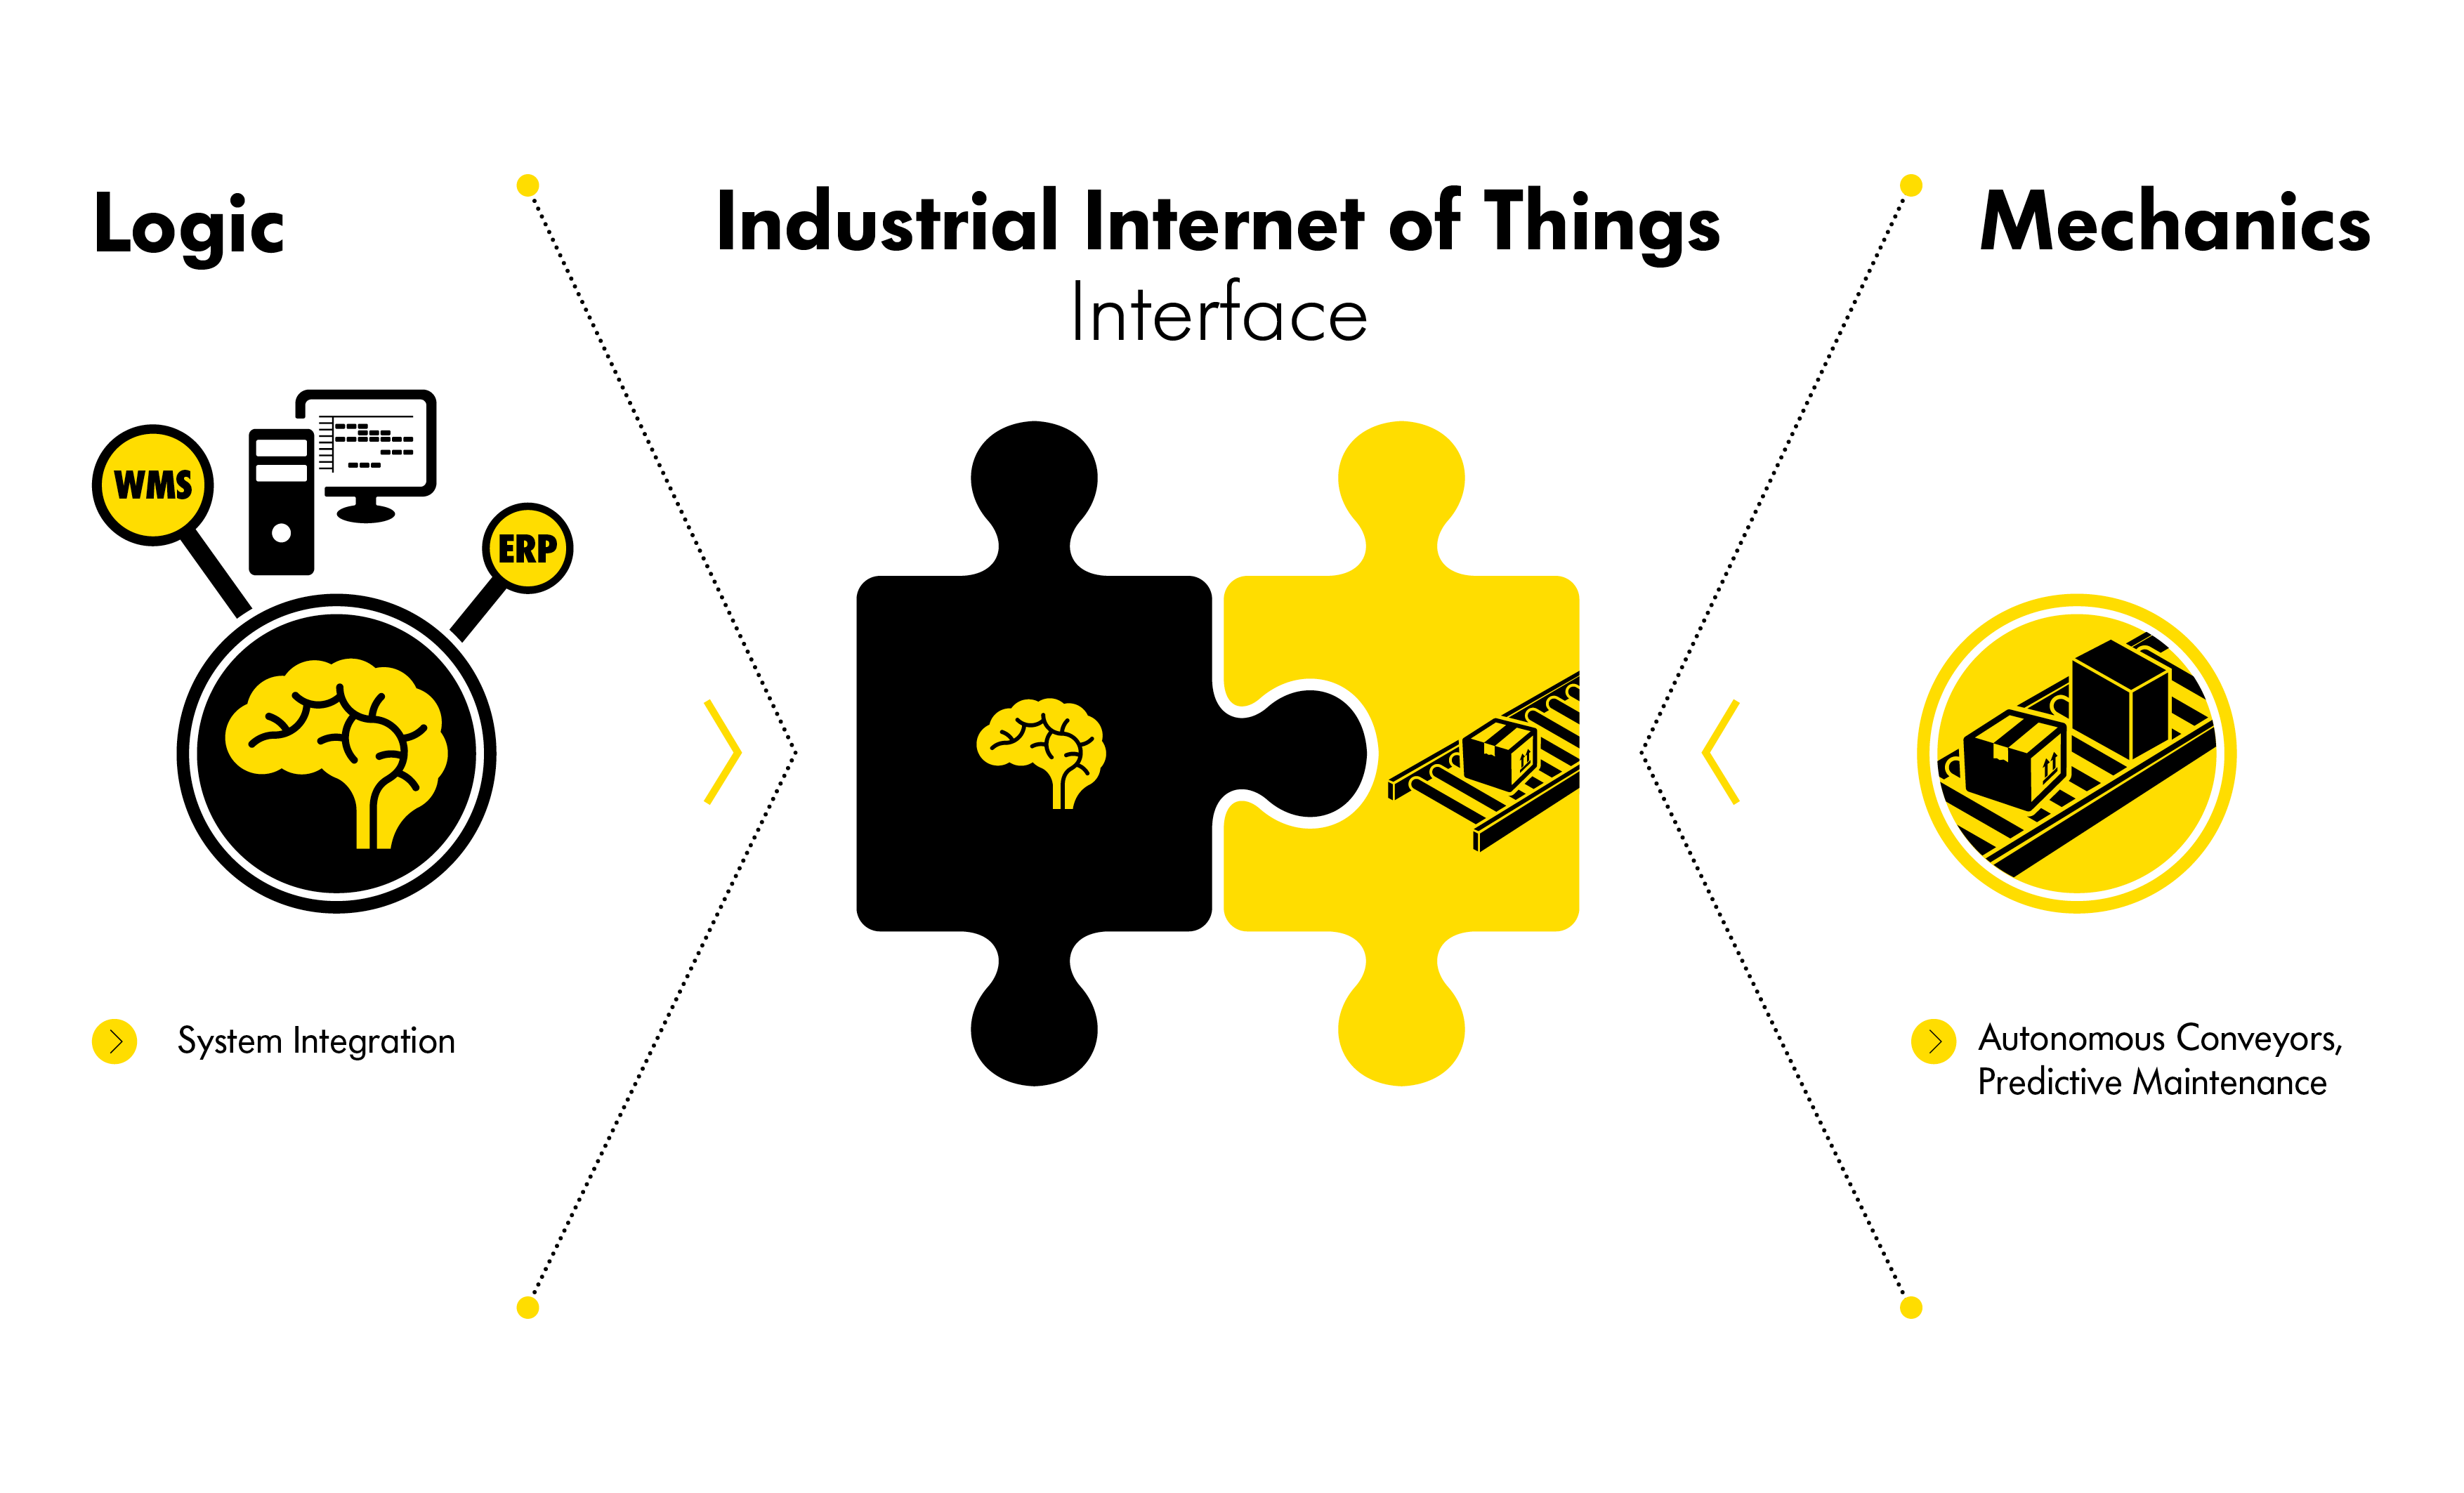 Industry 4.0 is emerging almost as an interface between logic and mechanics